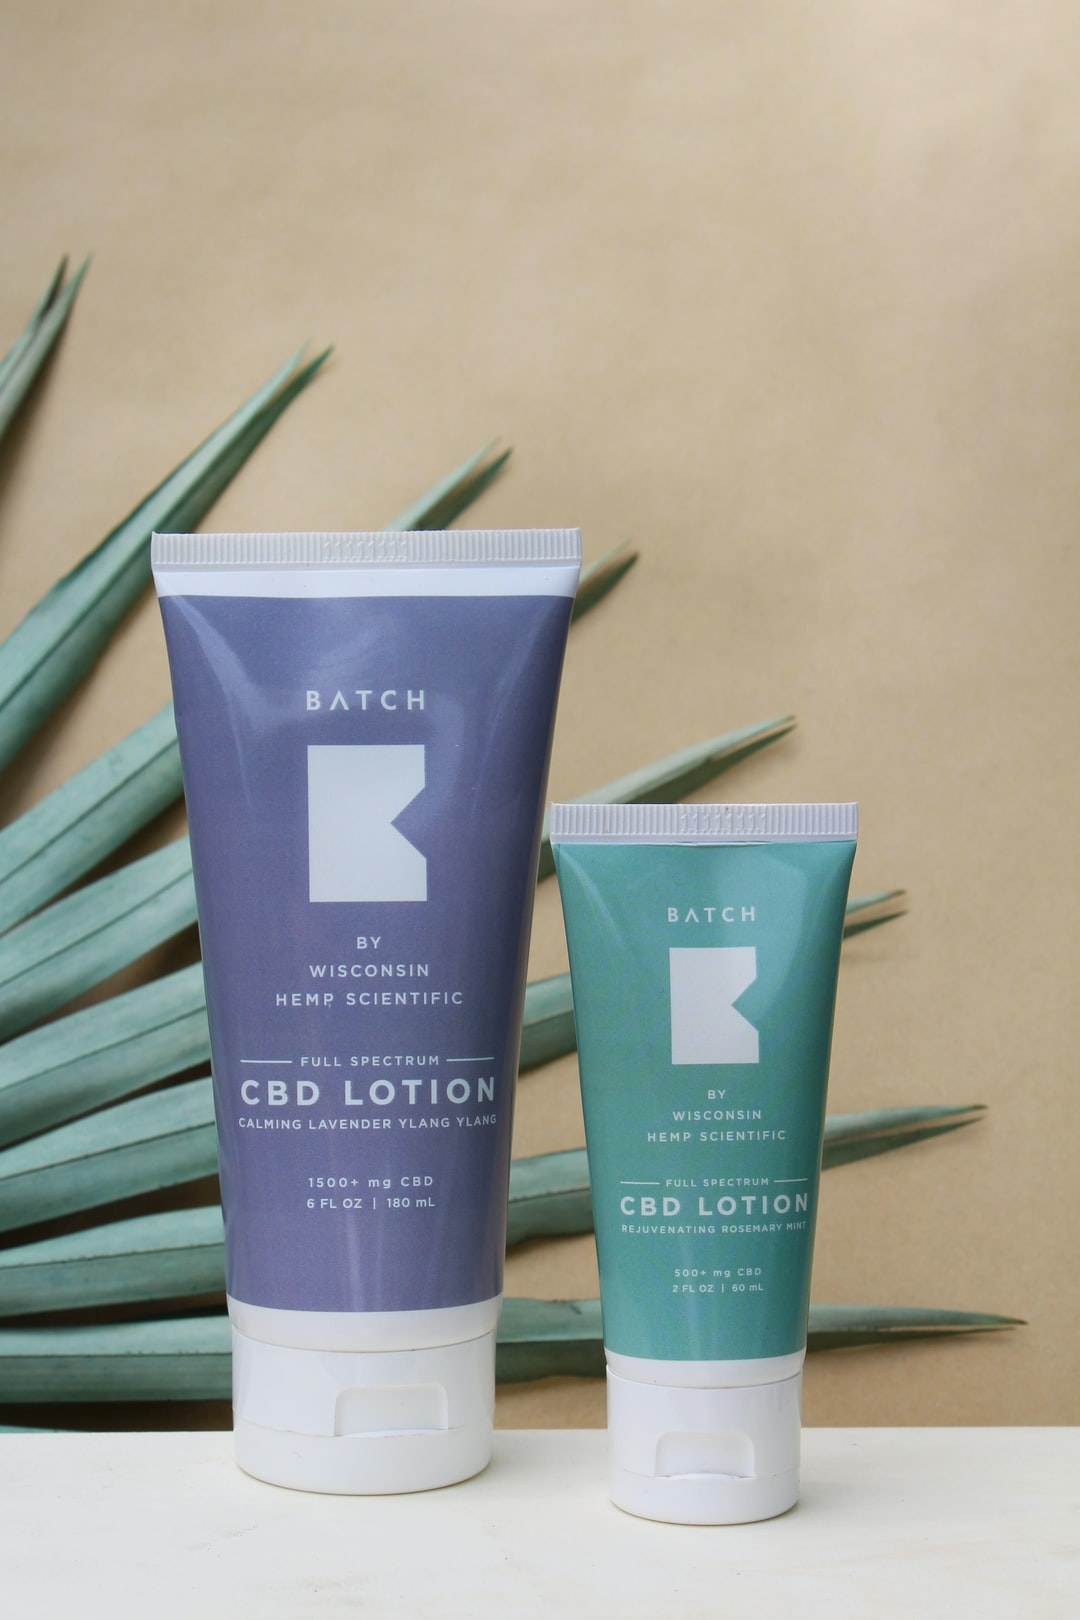 CBD lotion bottles on counter top with palm leaves and solid yellow background